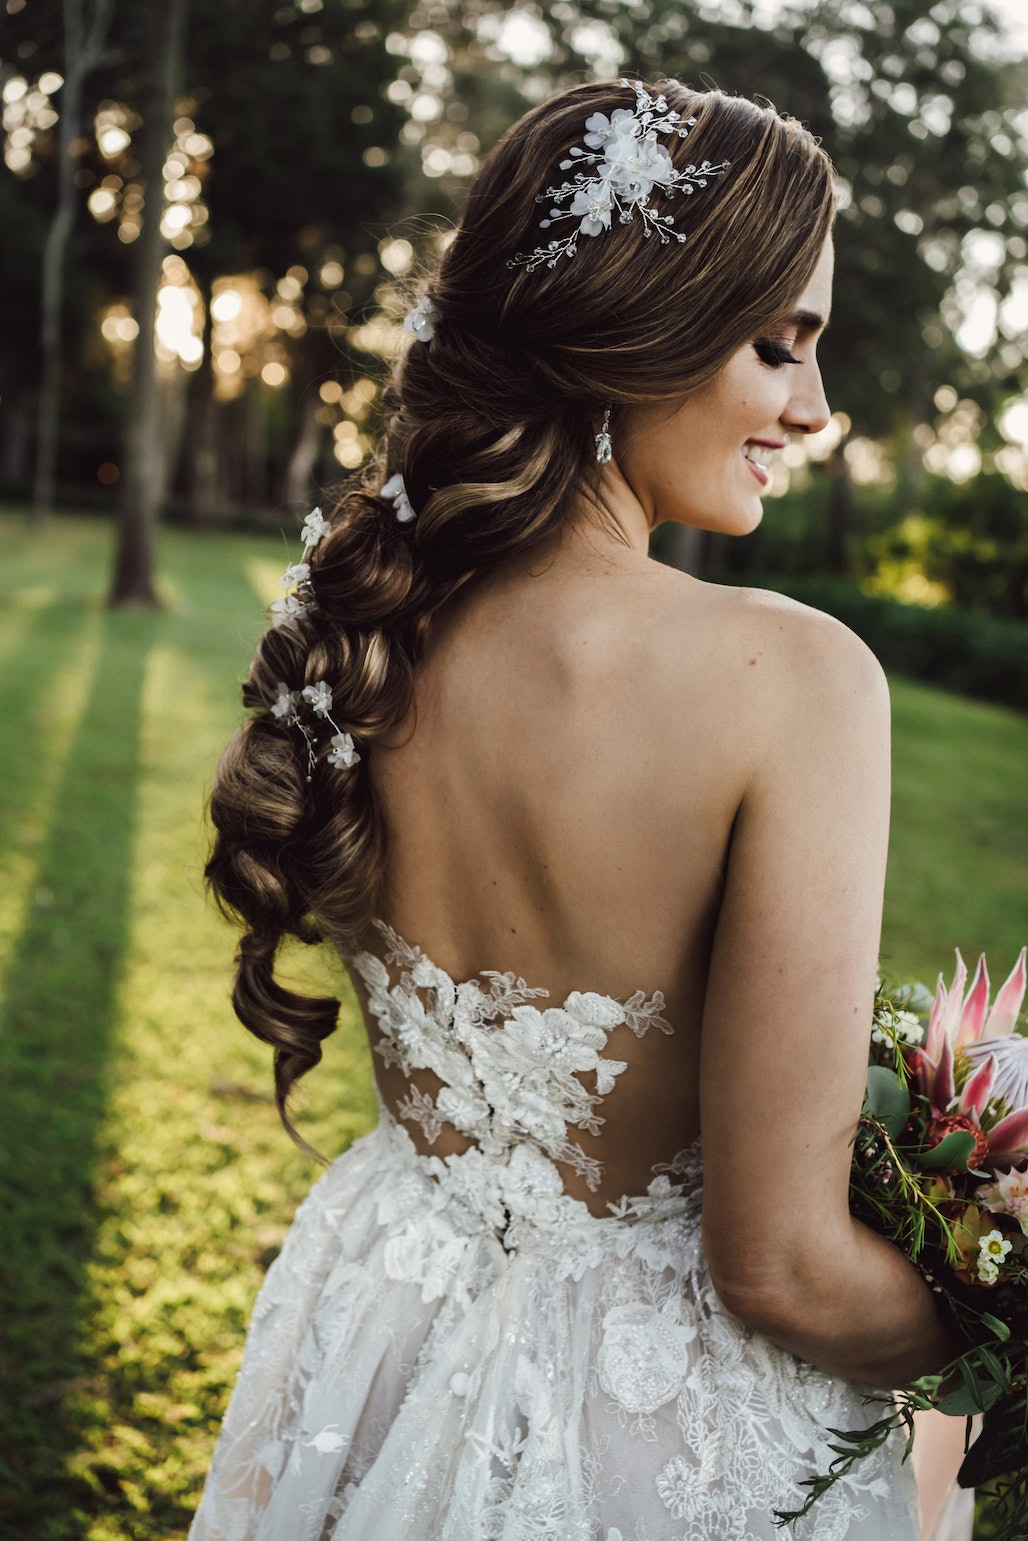 Bride looking down holding a bouquet with long braided hair with flower accessories in it